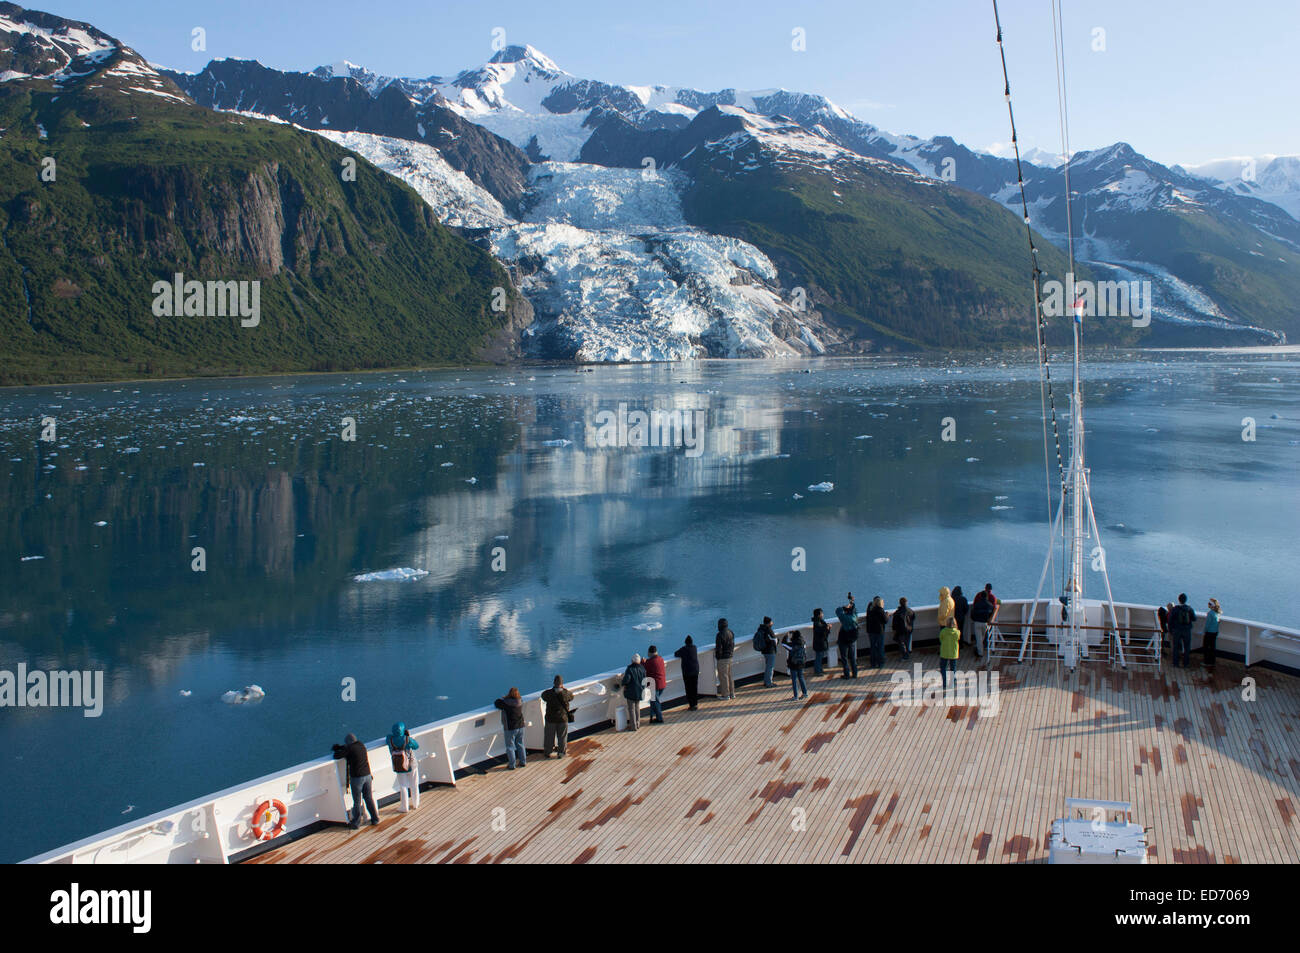 USA, Alaska, Prince William Sound, College Fiord, tourists on cruise ship viewing glaciers - Stock Image